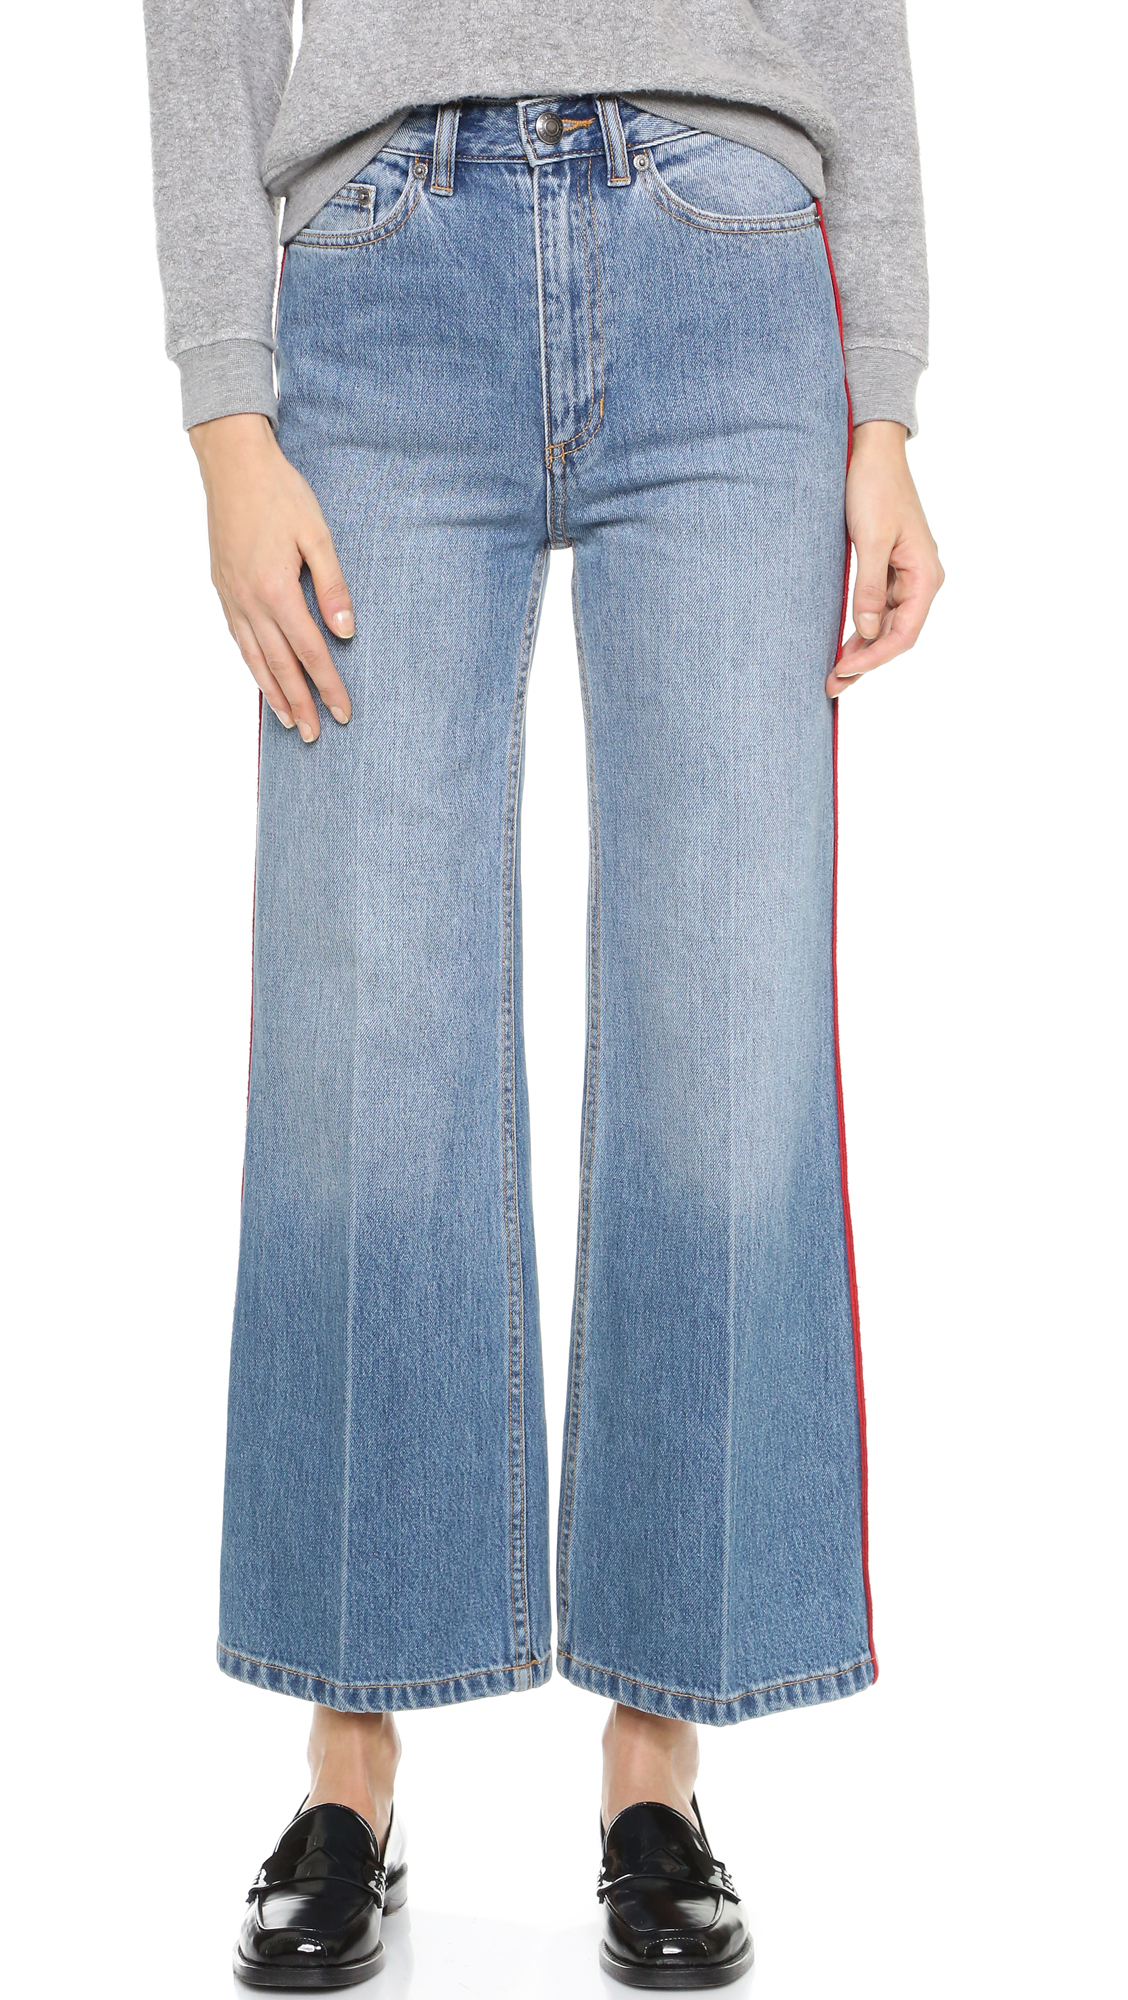 Womens Wide-Leg Jeans Marc Jacobs RM7iPPhR9